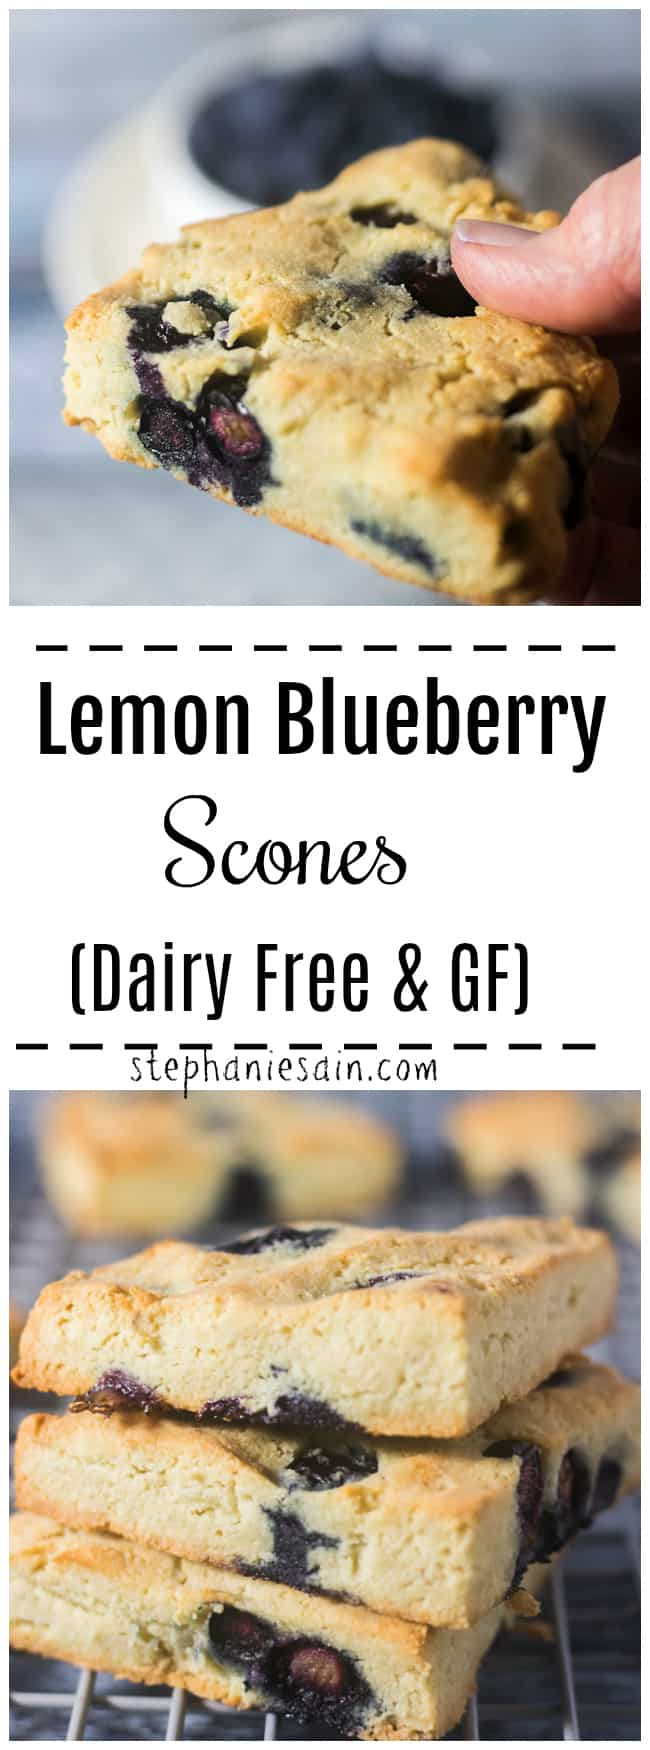 These Blueberry Scones are loaded with fresh blueberries and lemon zest. A healthier low carb treat for breakfast or snacking. Made with almond & coconut flour and No added refined sugar. GF, Dairy Free.